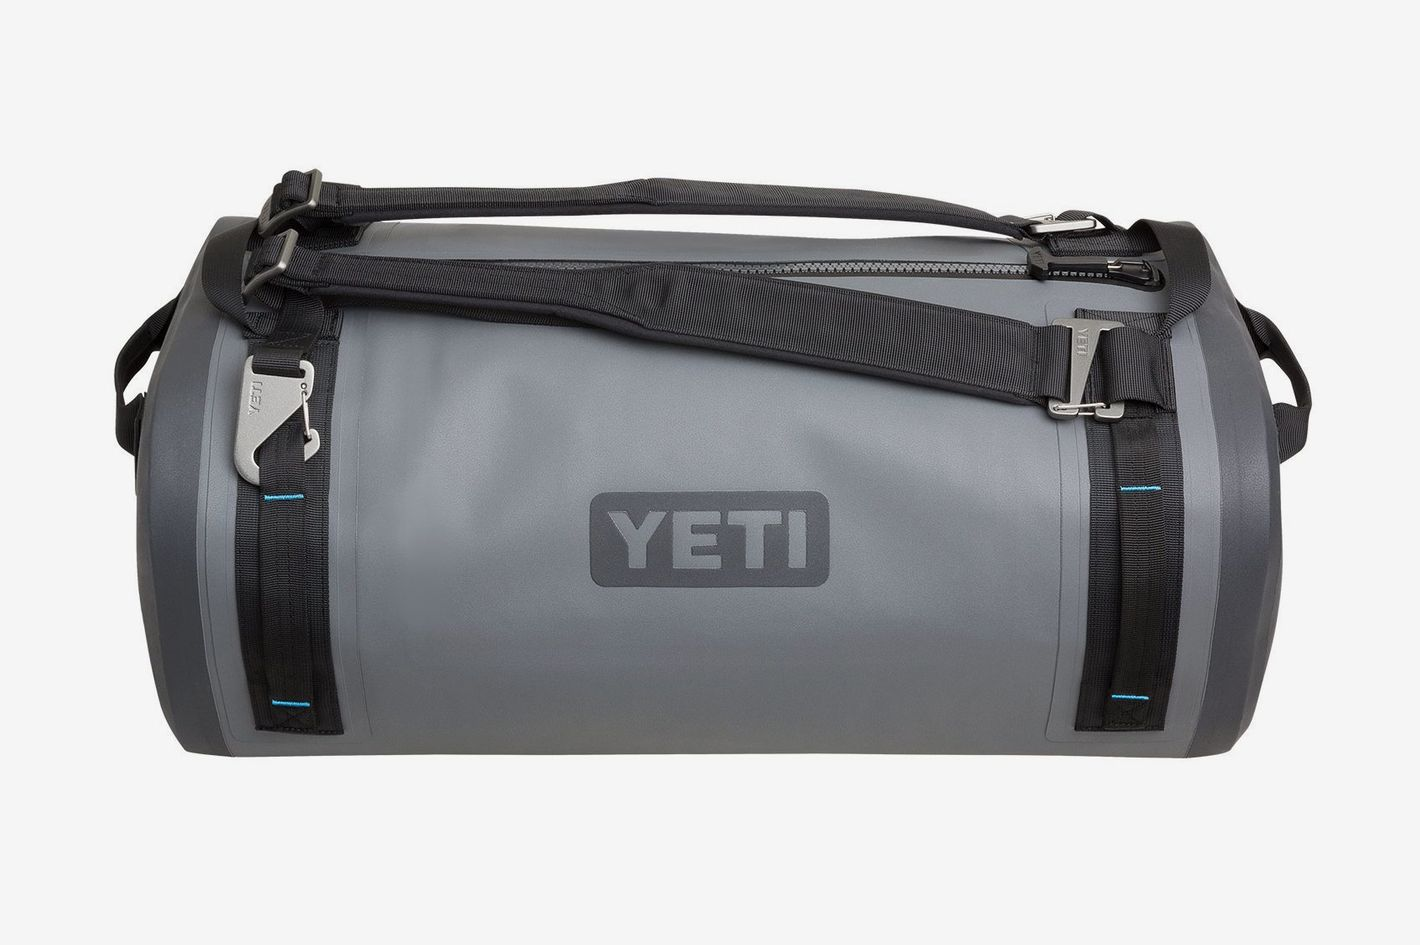 e70e36b0d8bd Yeti Panga Airtight Waterproof Submersible Duffel Bag